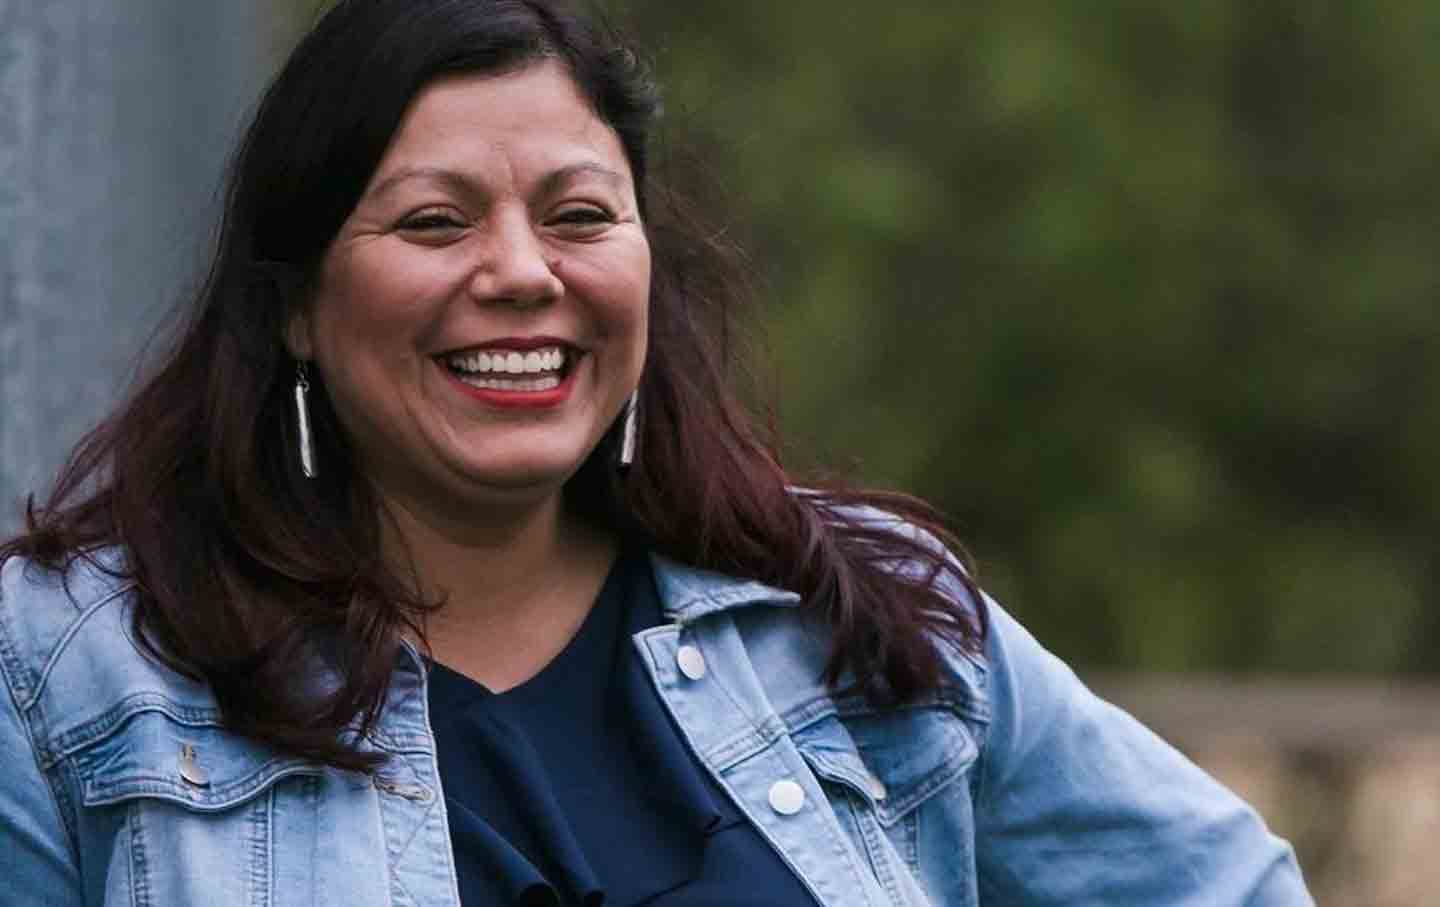 How a Native American Woman Defeated a 4-Term Republican Incumbent